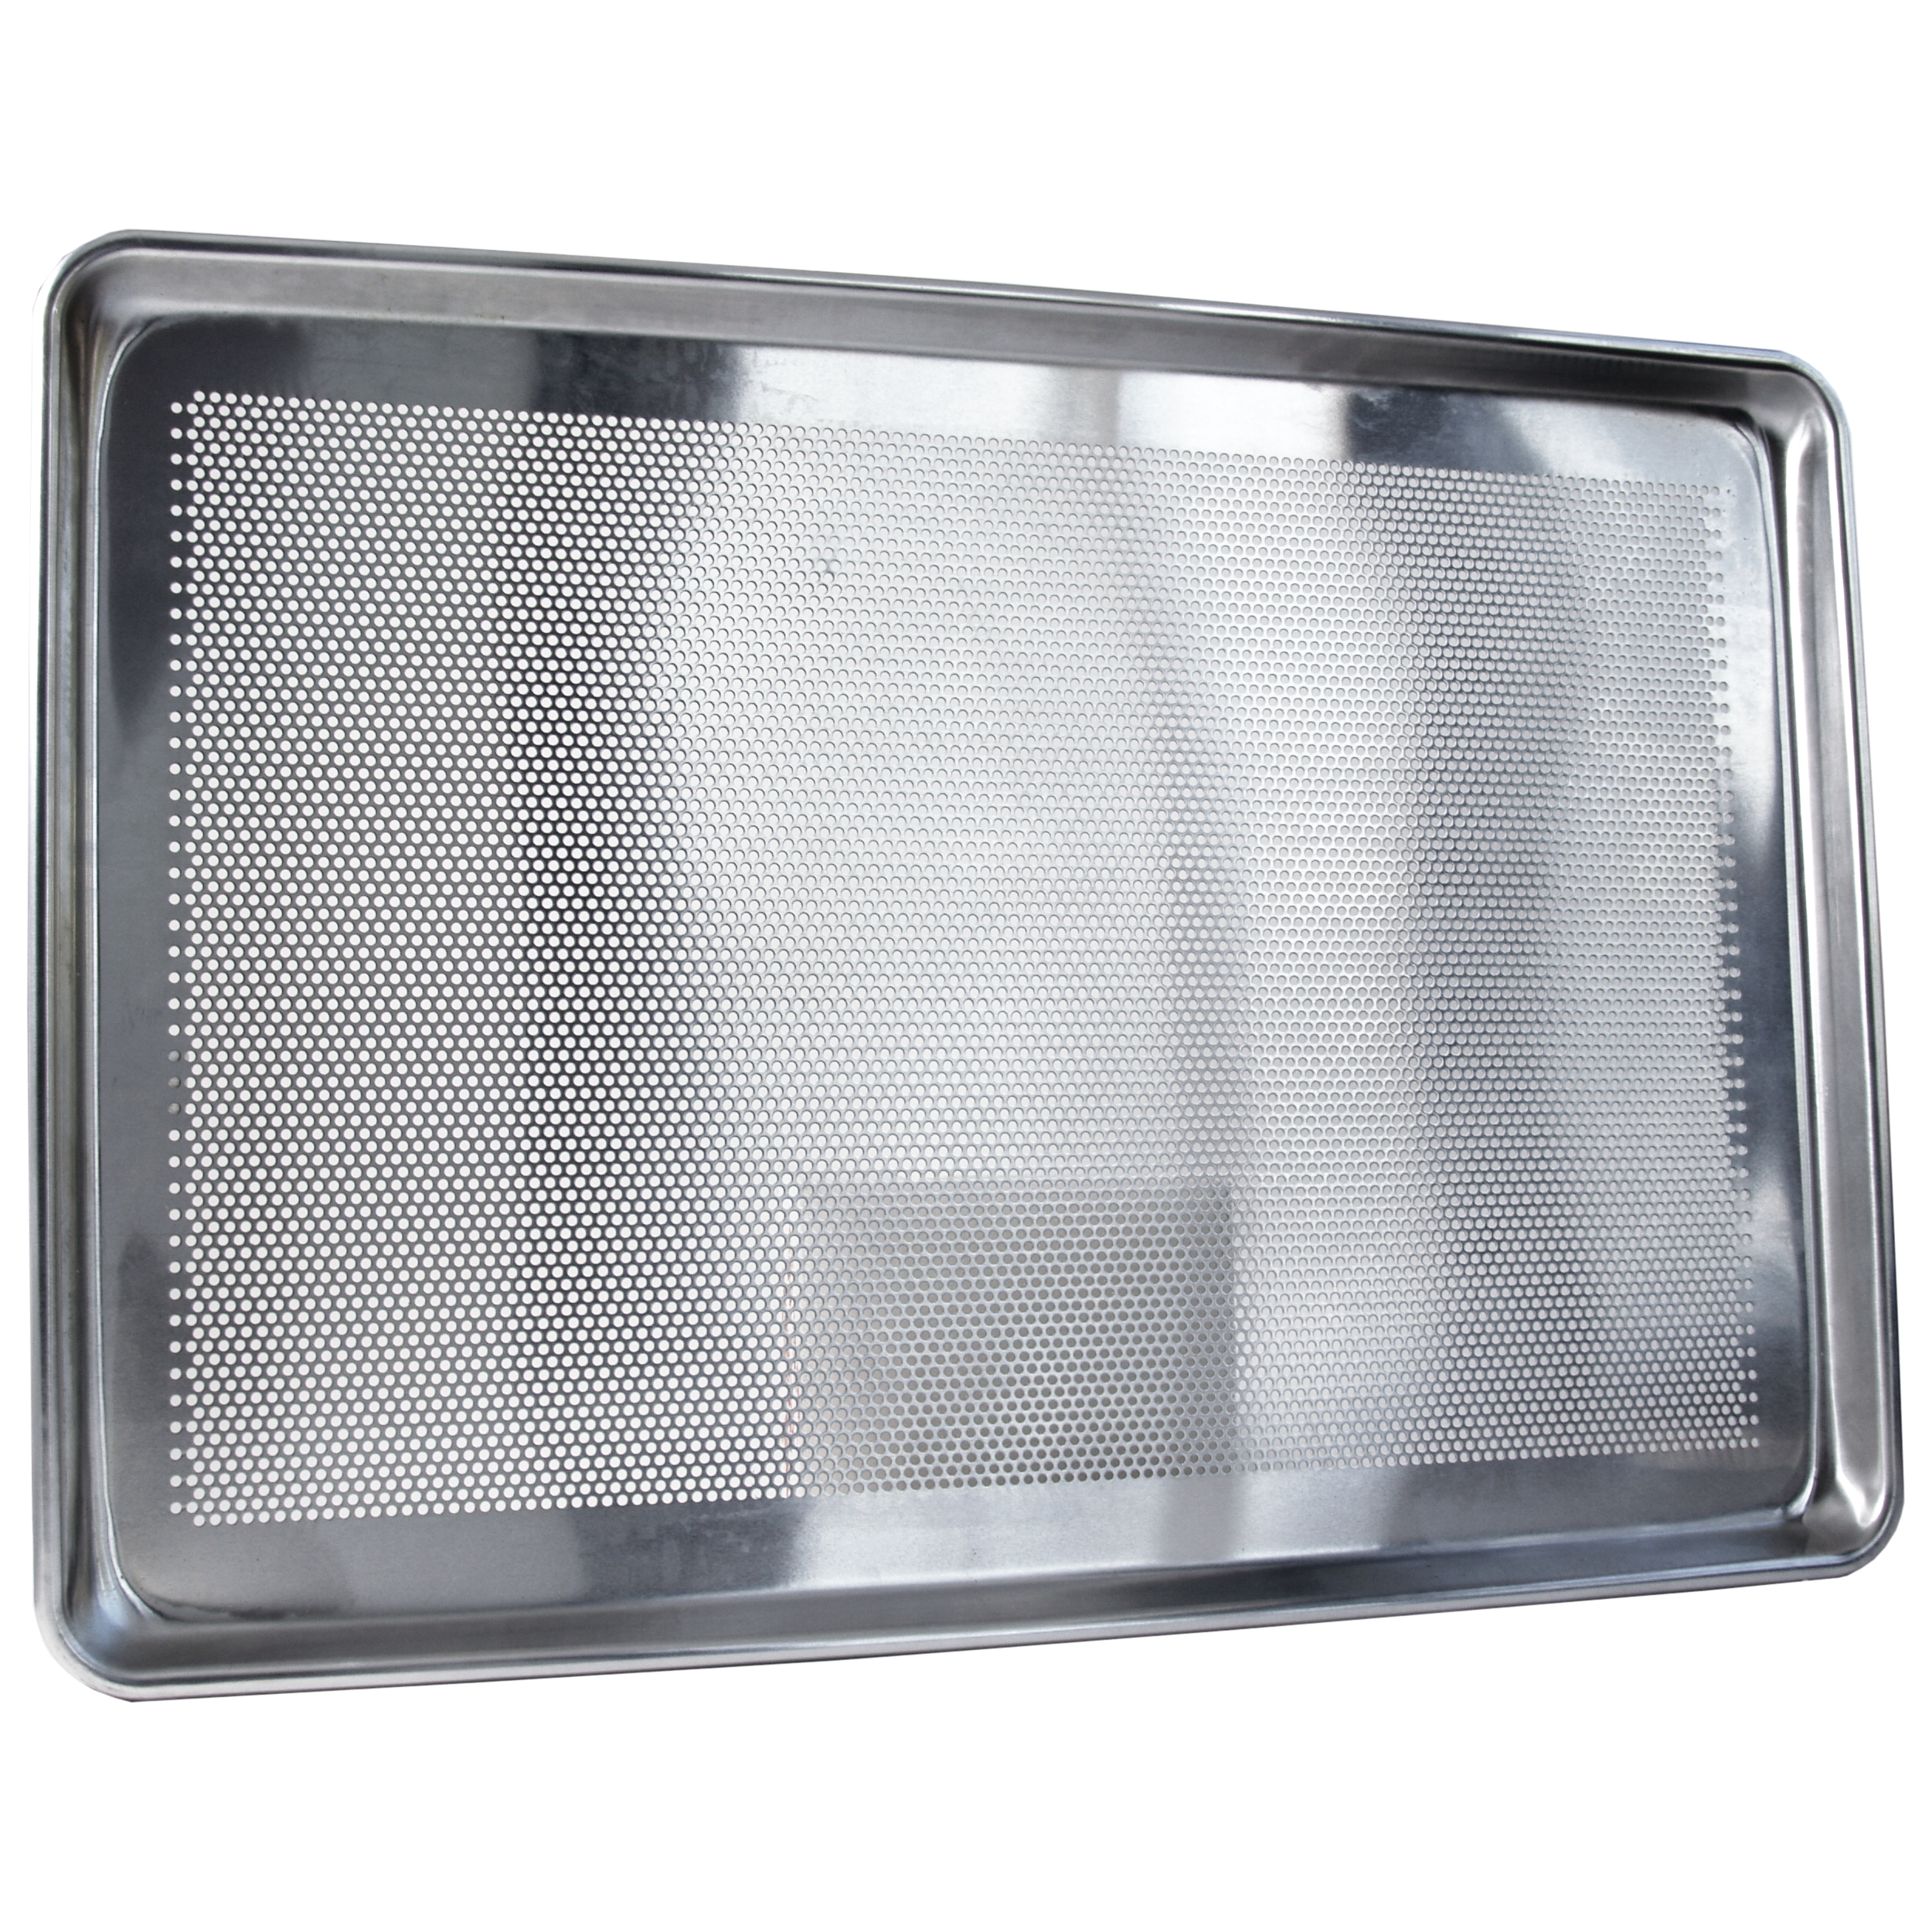 Focus Foodservice Commercial Bakeware Perforated Aluminum Sheet Pan, 12 x 18 Inch